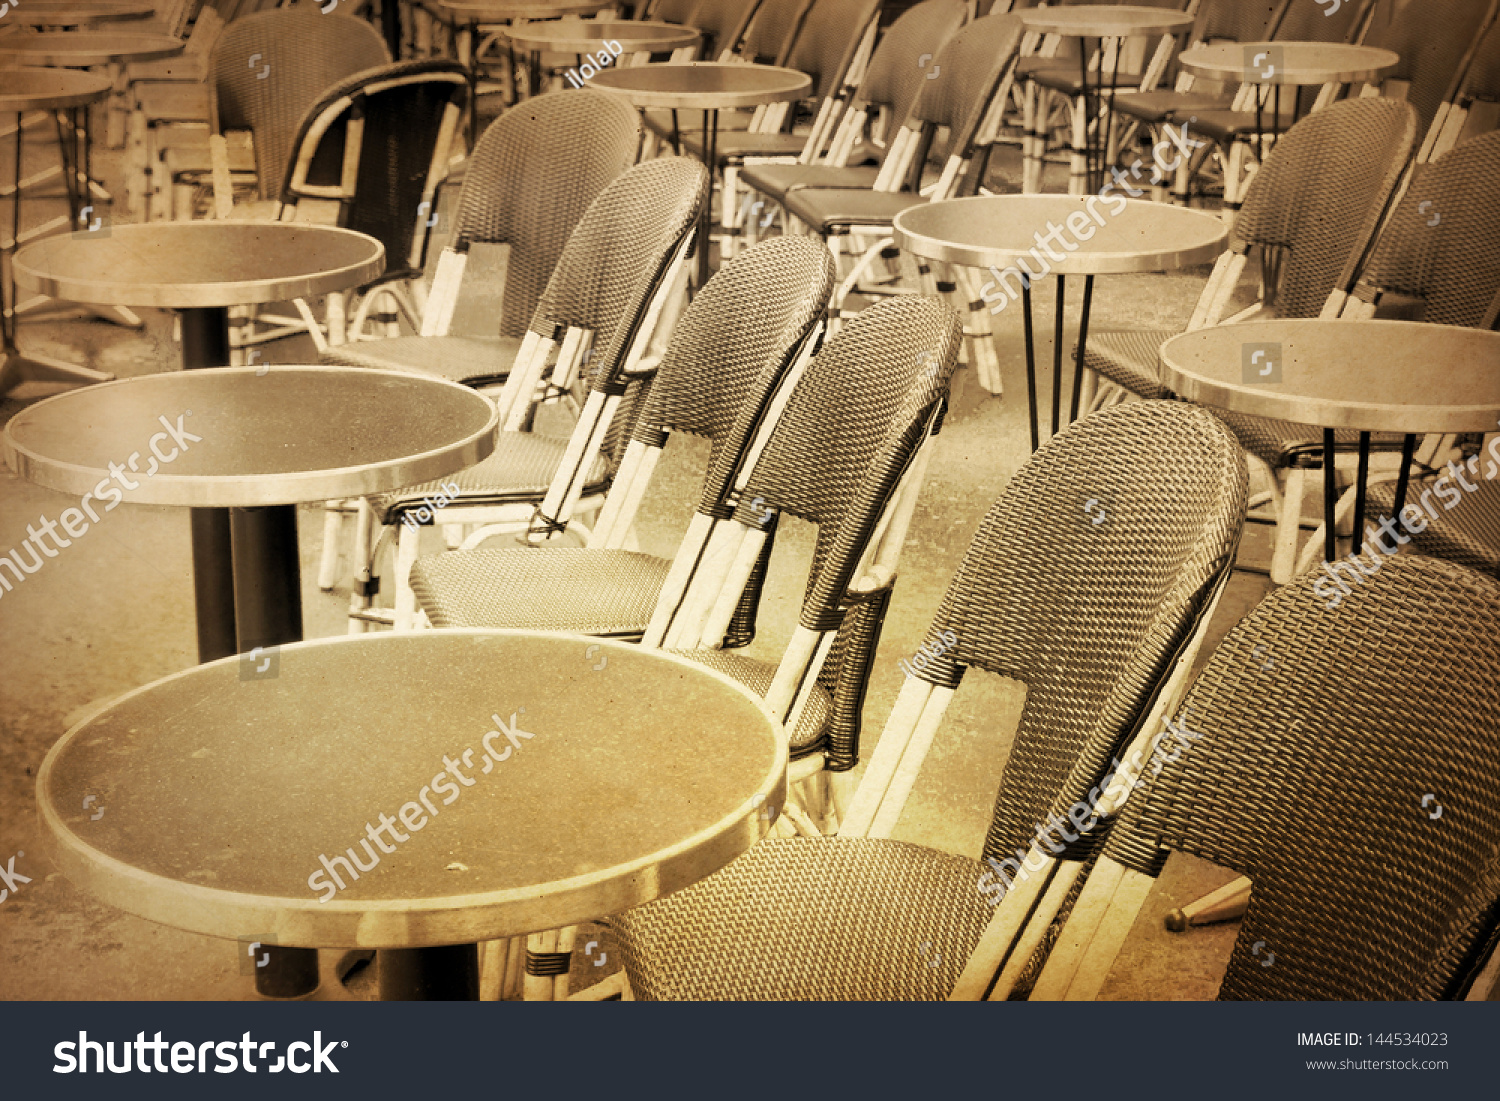 Oldfashioned Coffee Terrace Tables Chairsparis France Stock Photo 144534023 Shutterstock